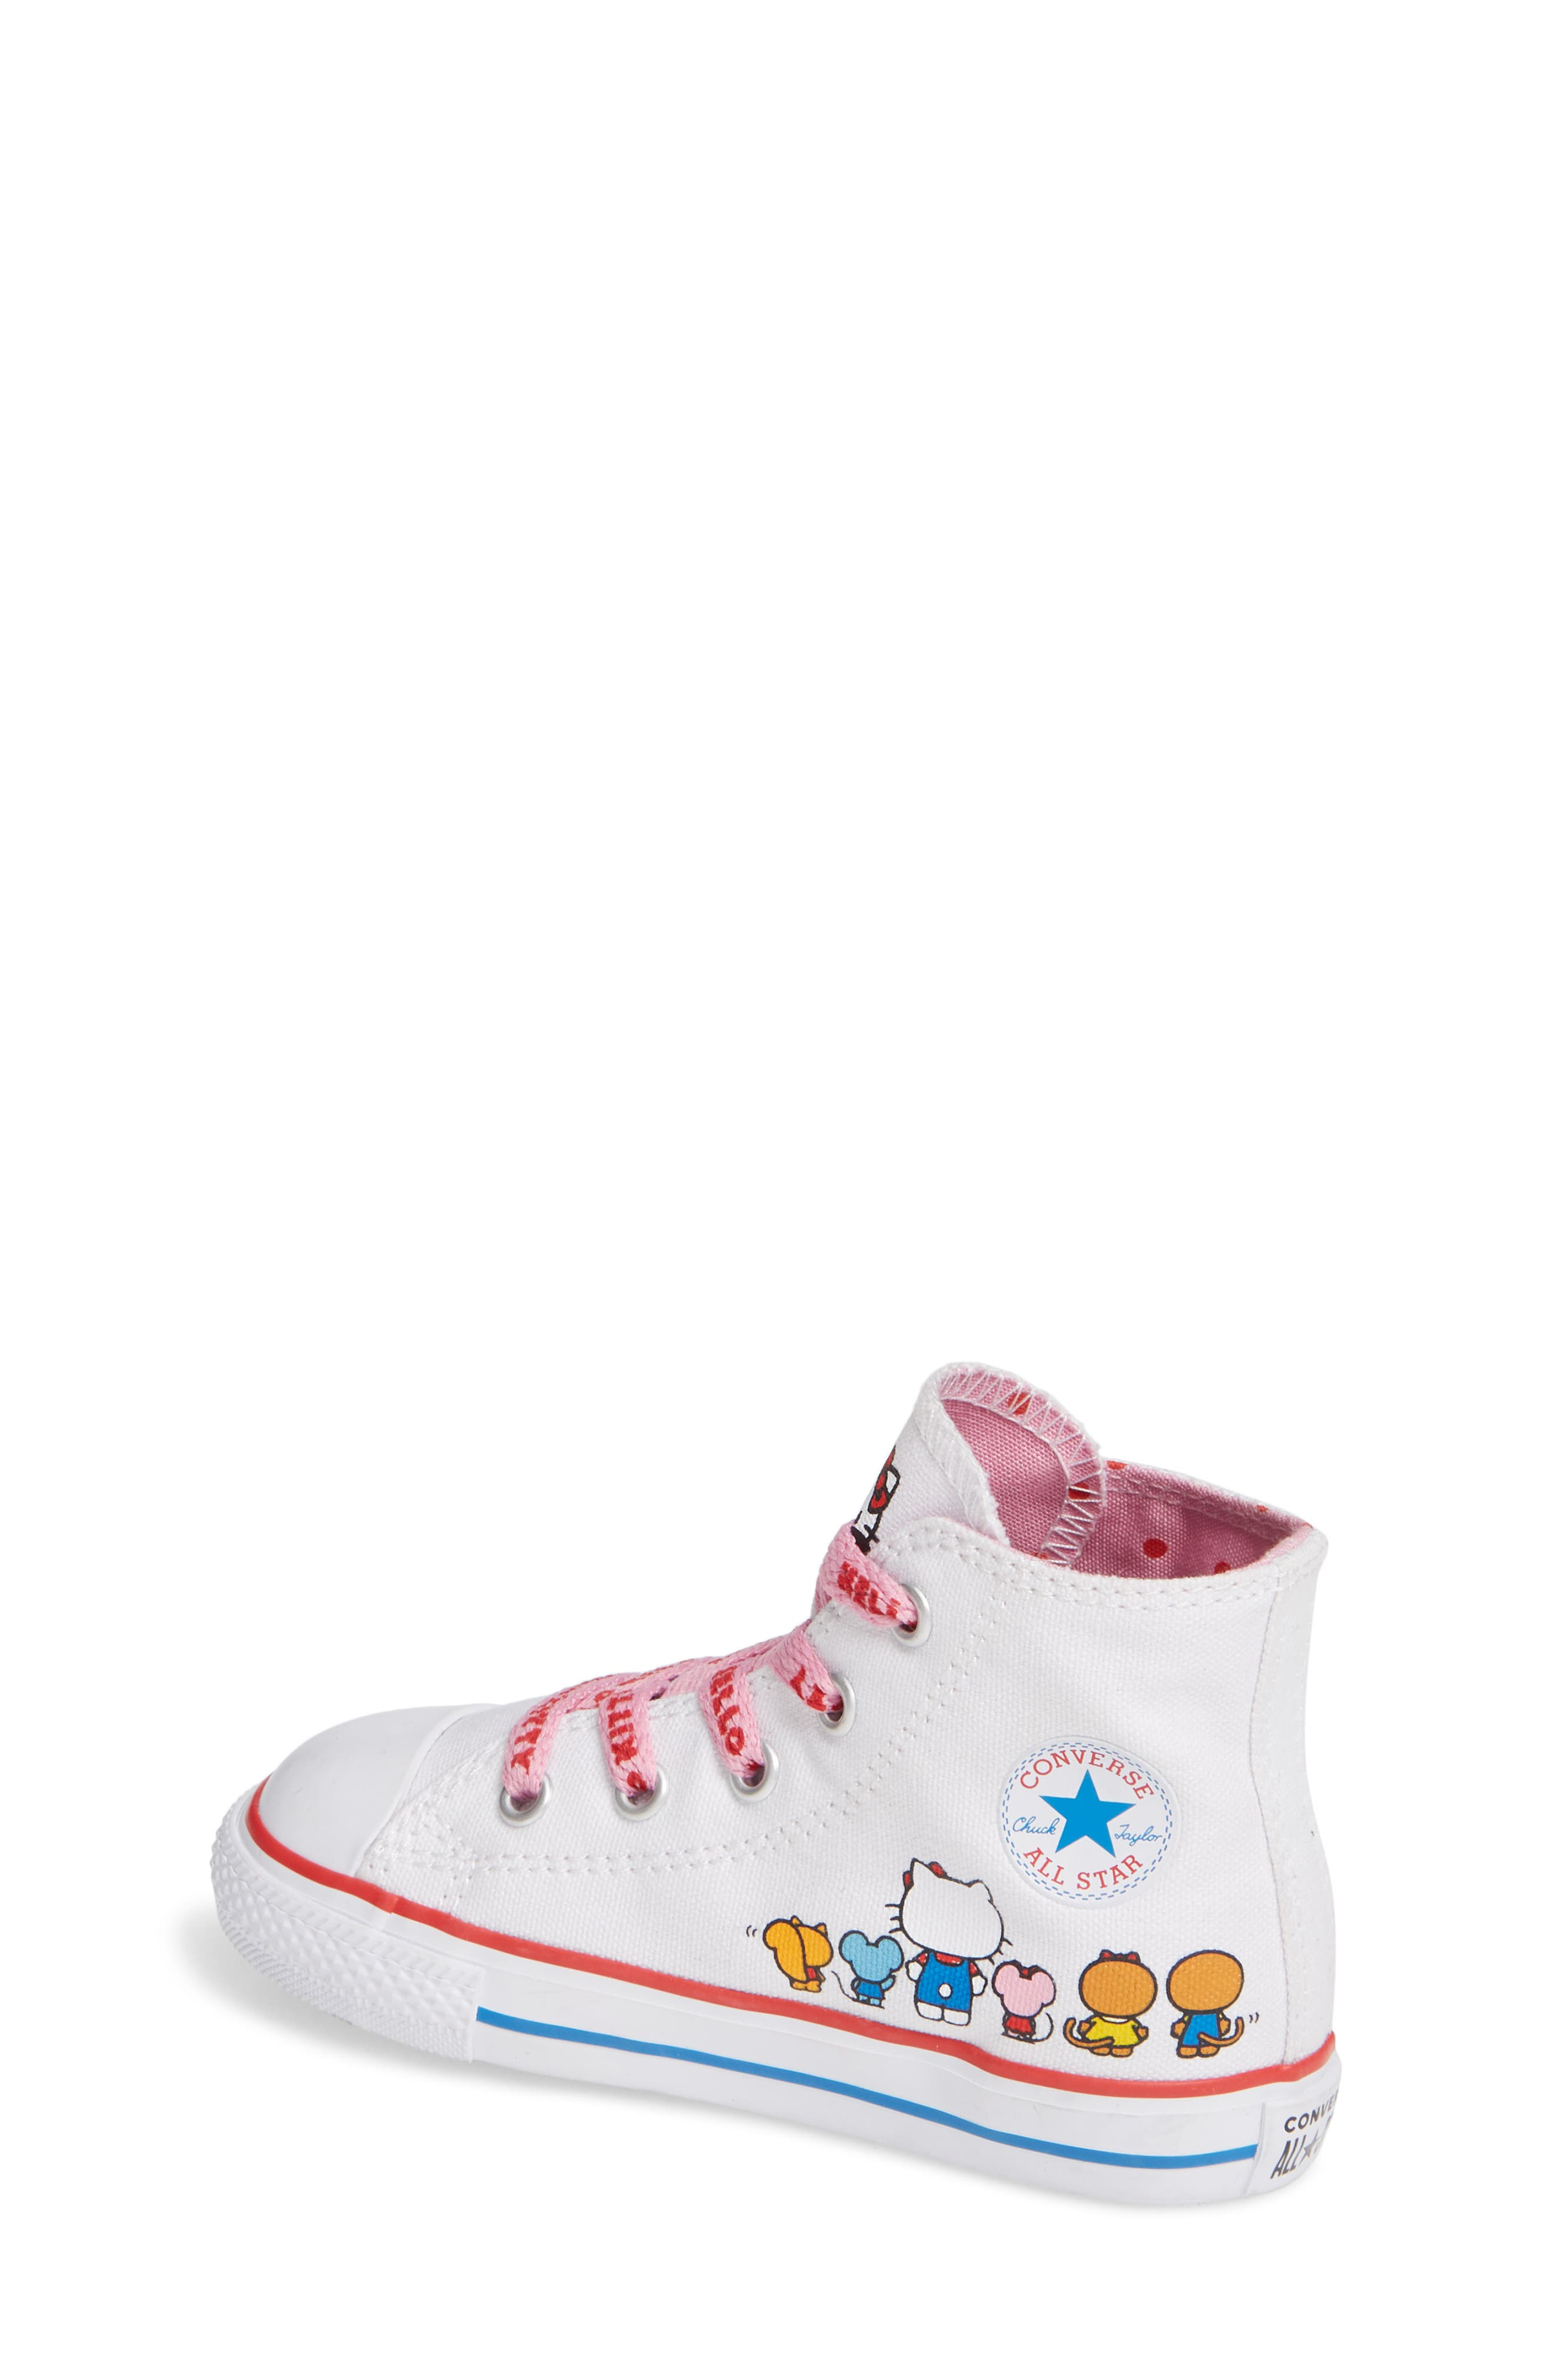 Chuck Taylor<sup>®</sup> All Star<sup>®</sup> Hello Kitty<sup>®</sup> High Top Sneaker,                             Alternate thumbnail 2, color,                             WHITE